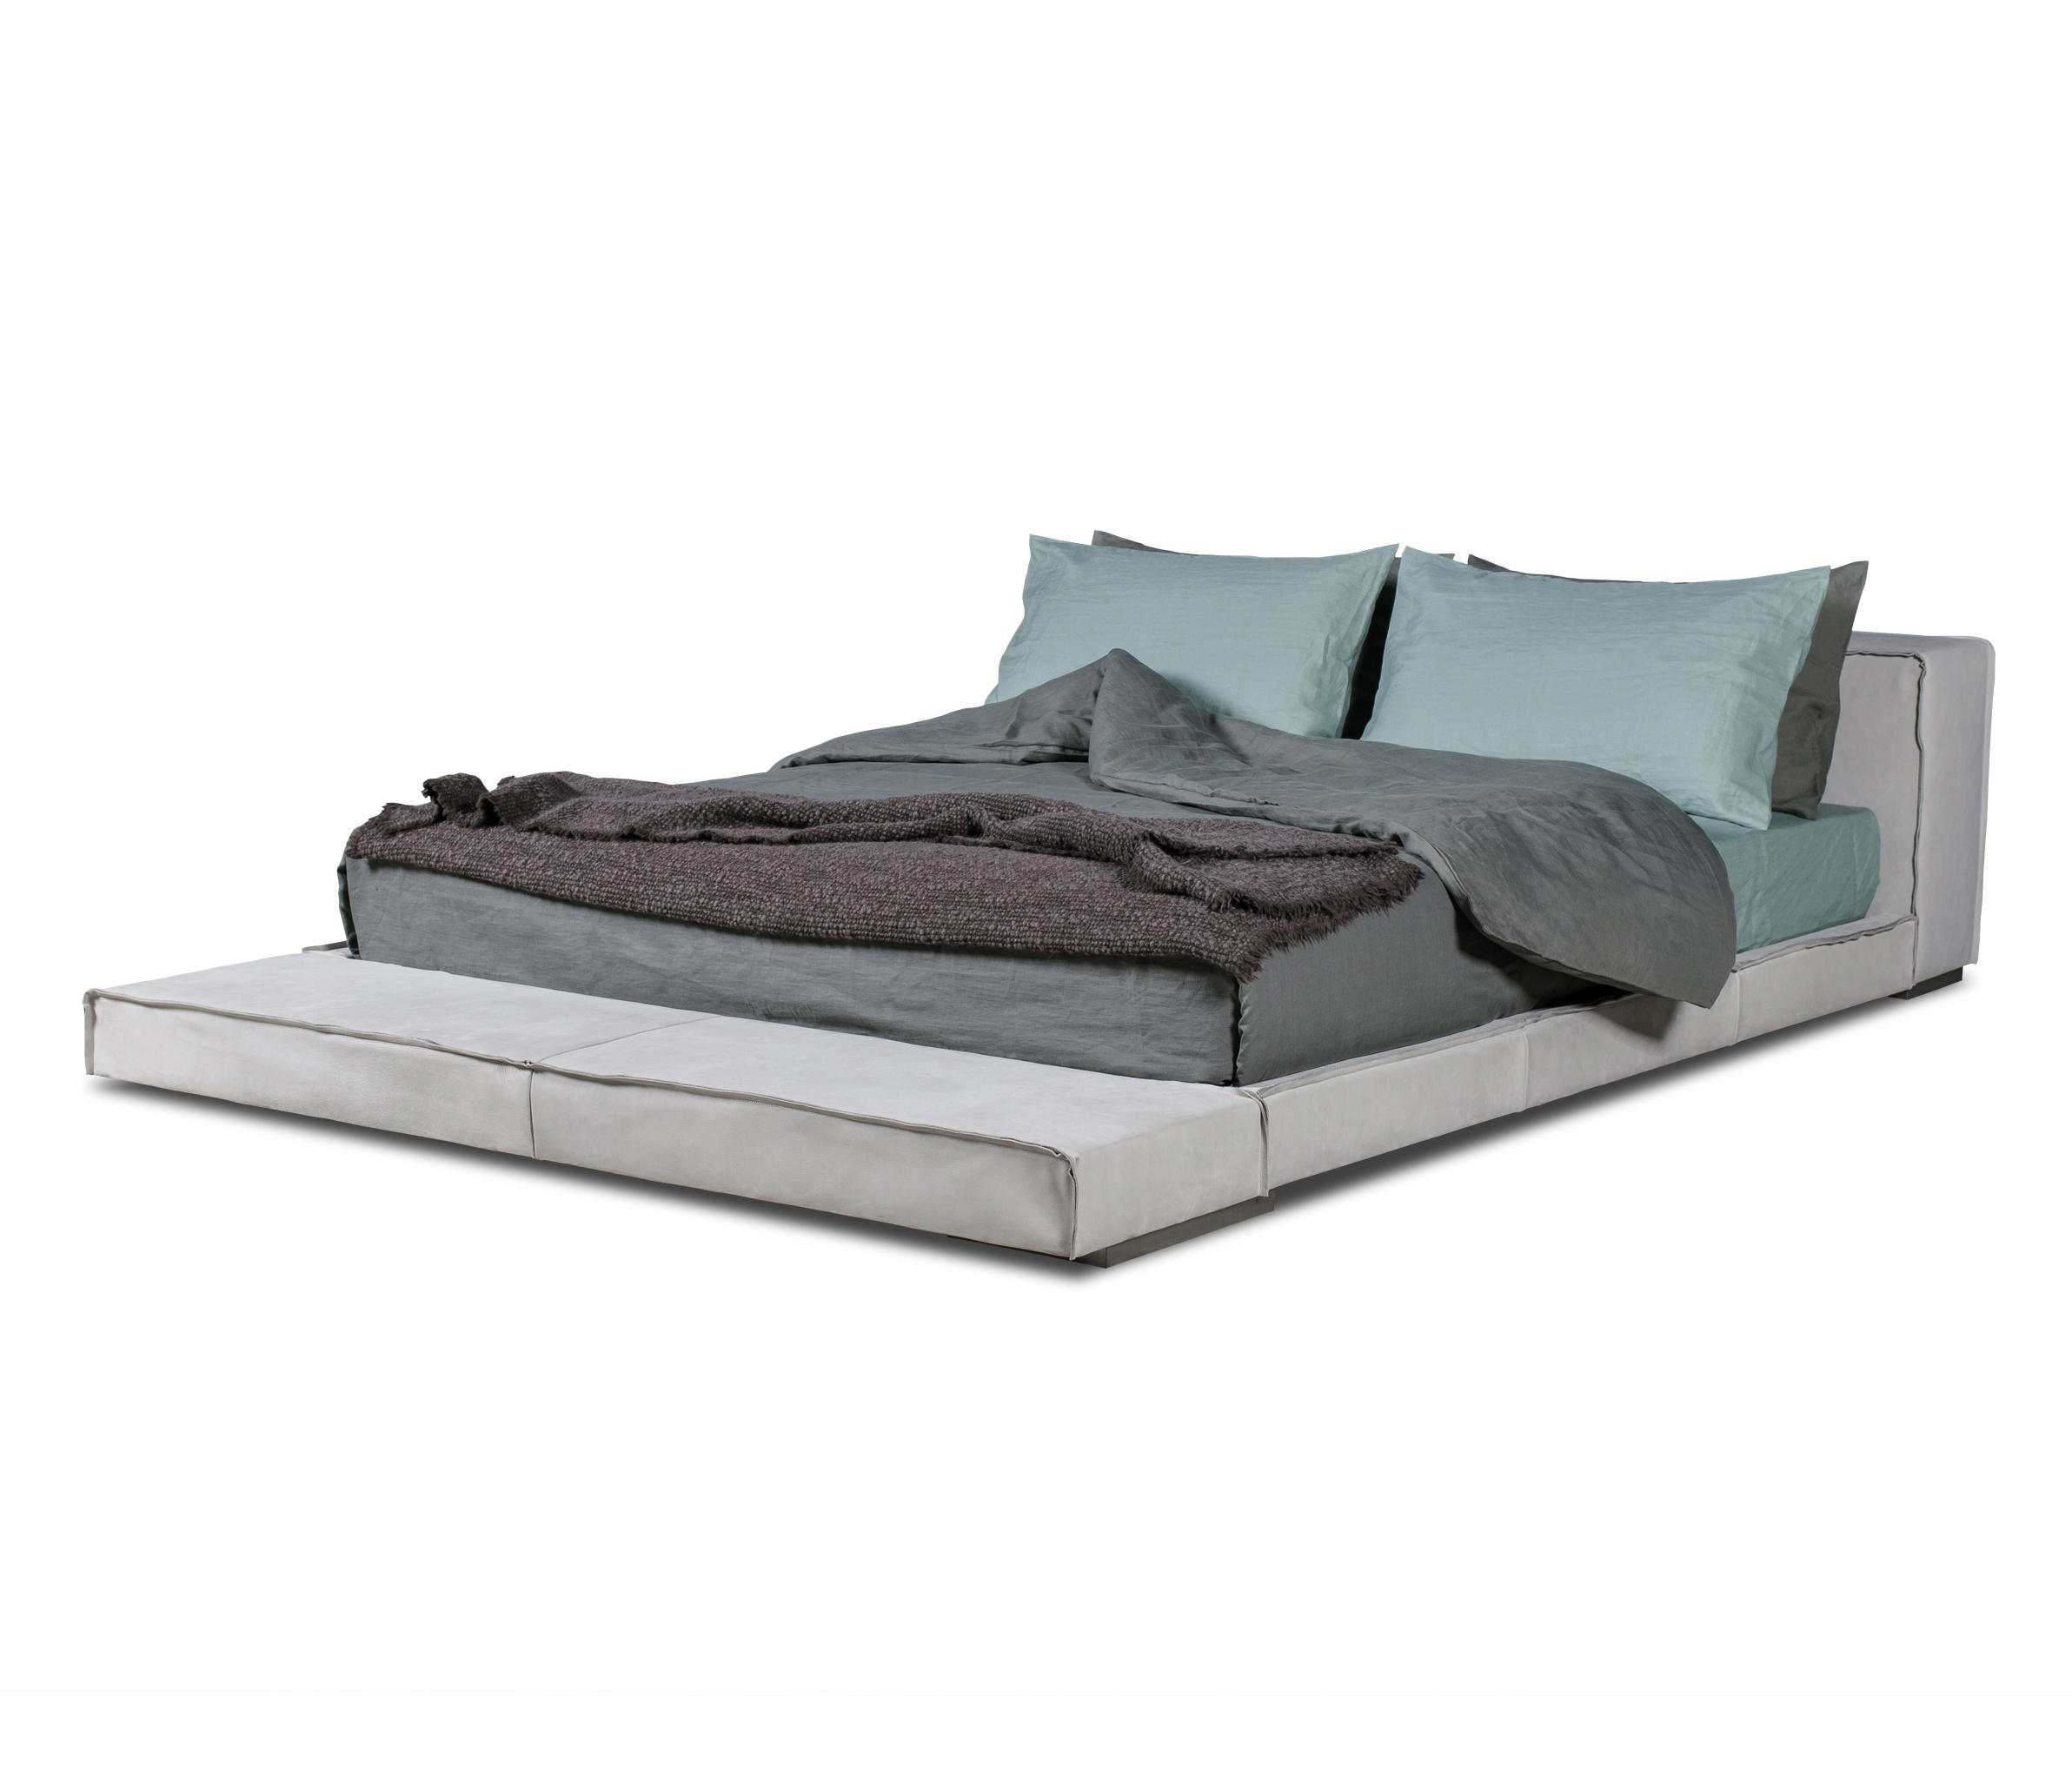 Budapest soft letto letti matrimoniali baxter architonic for Baxter letti